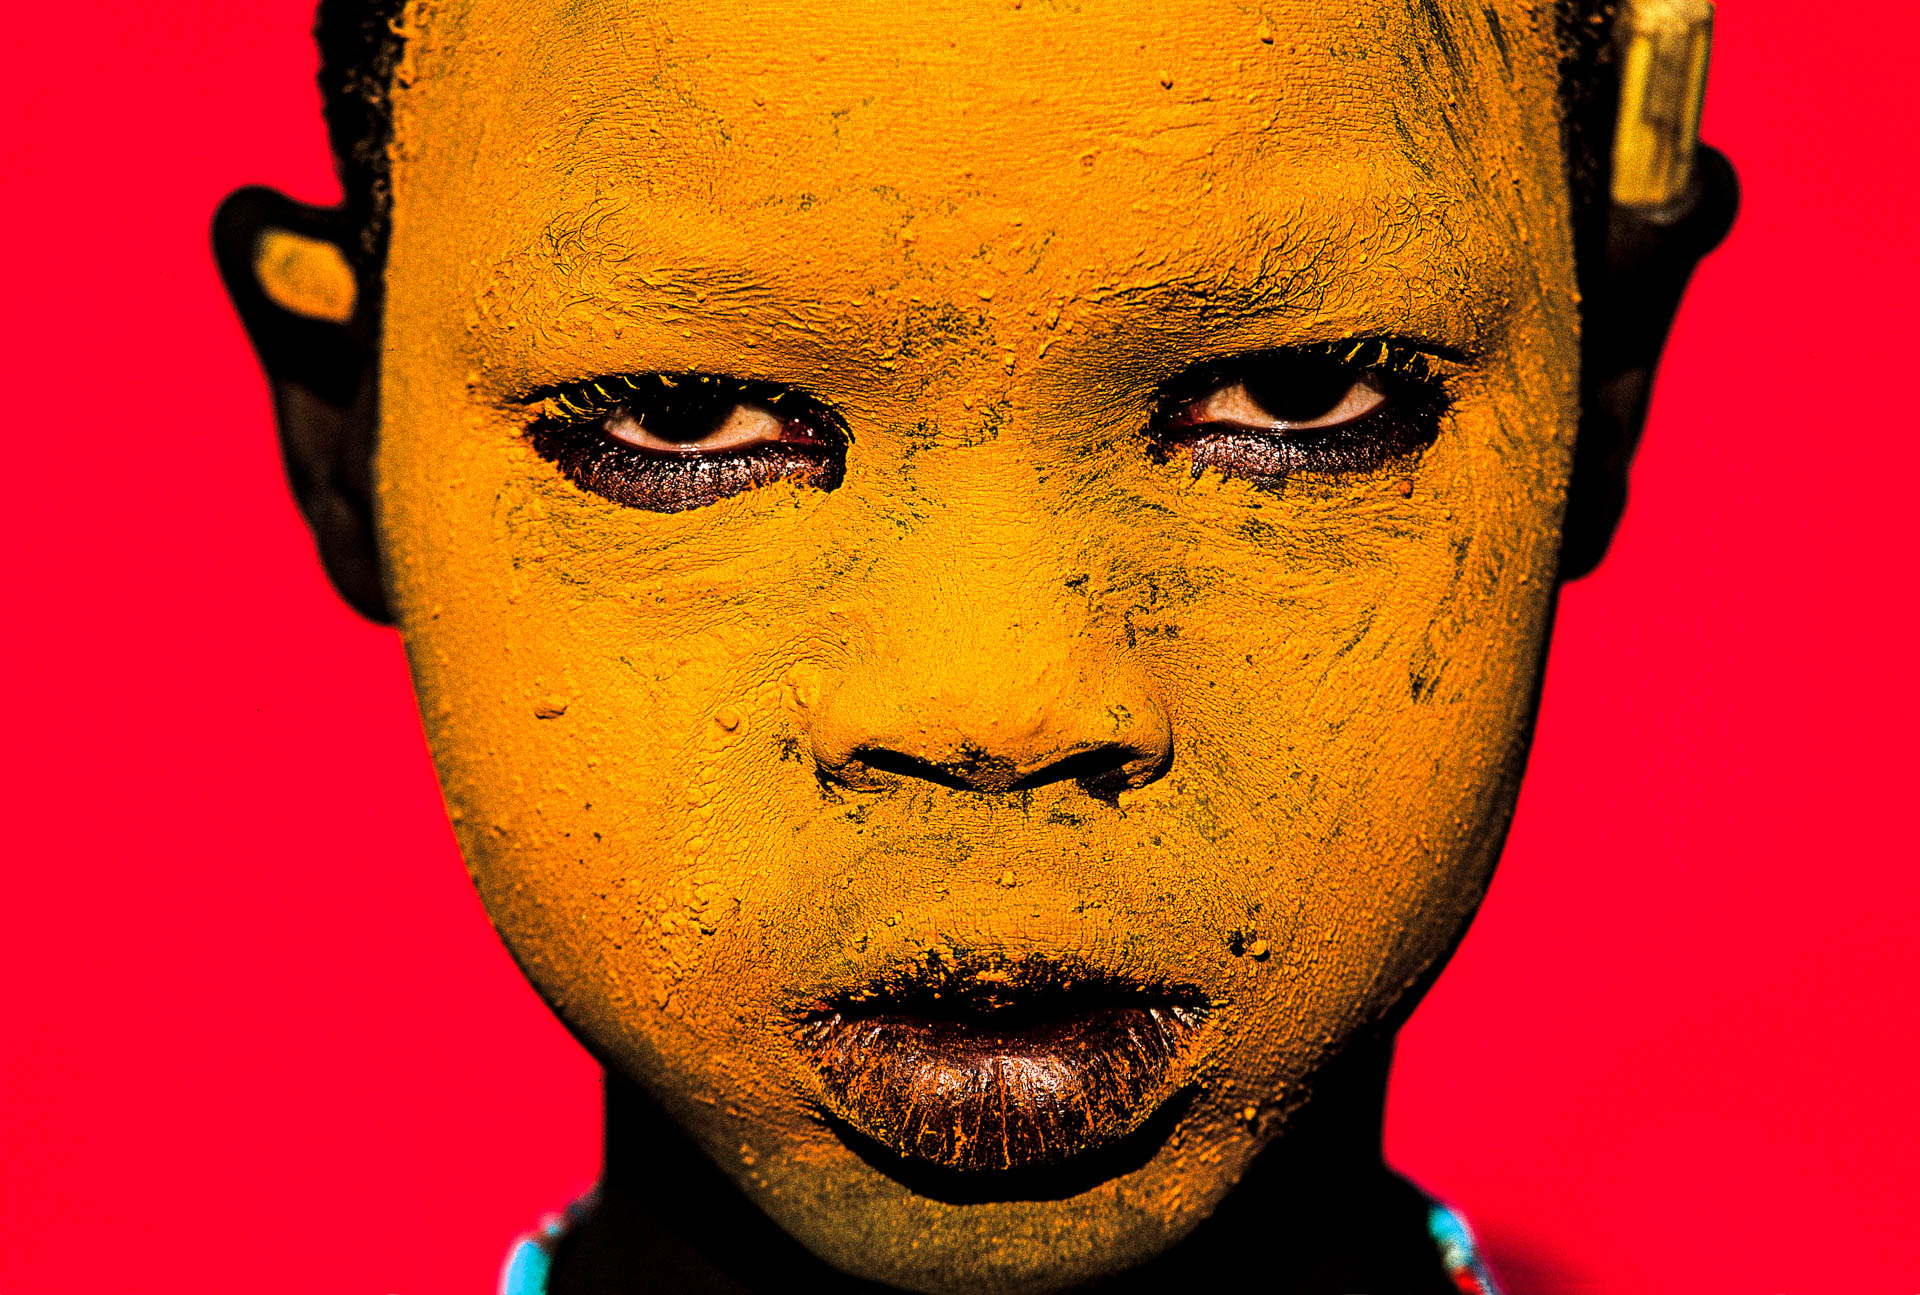 A Surma child, whose face is painted yellow, poses for the photographer.